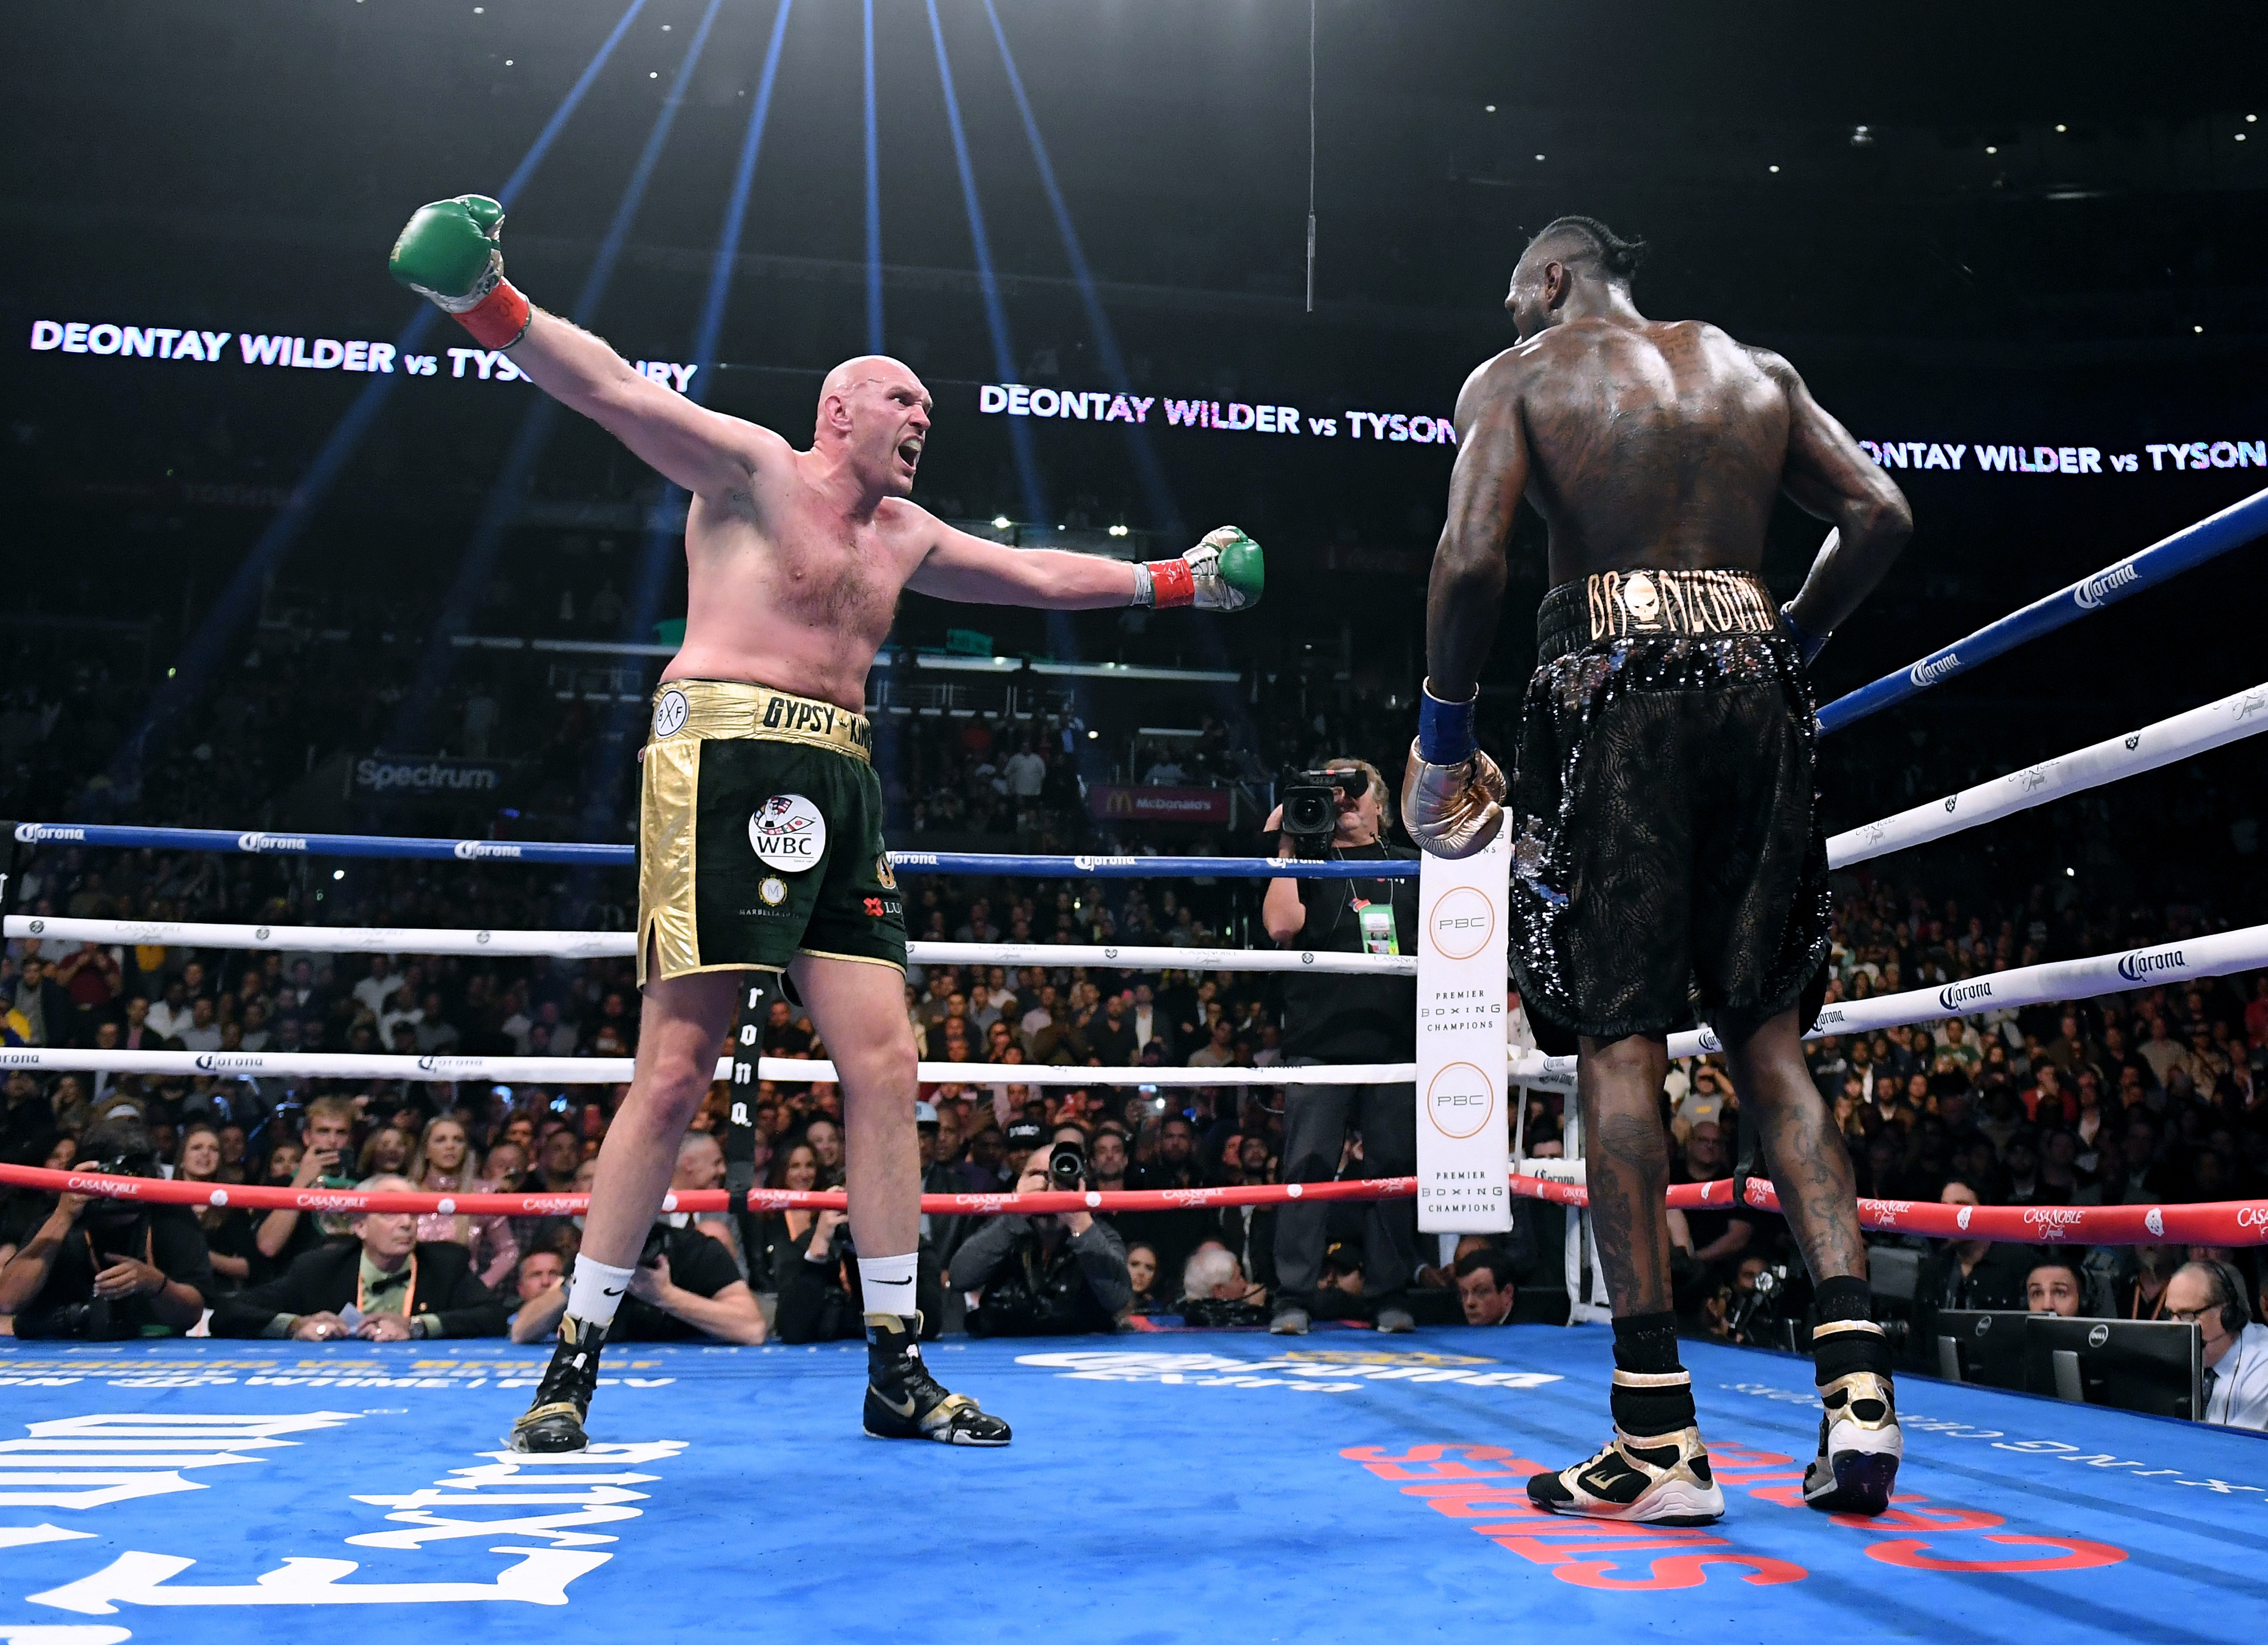 The first fight between Tyson Fury and Deontay Wilder was a thriller